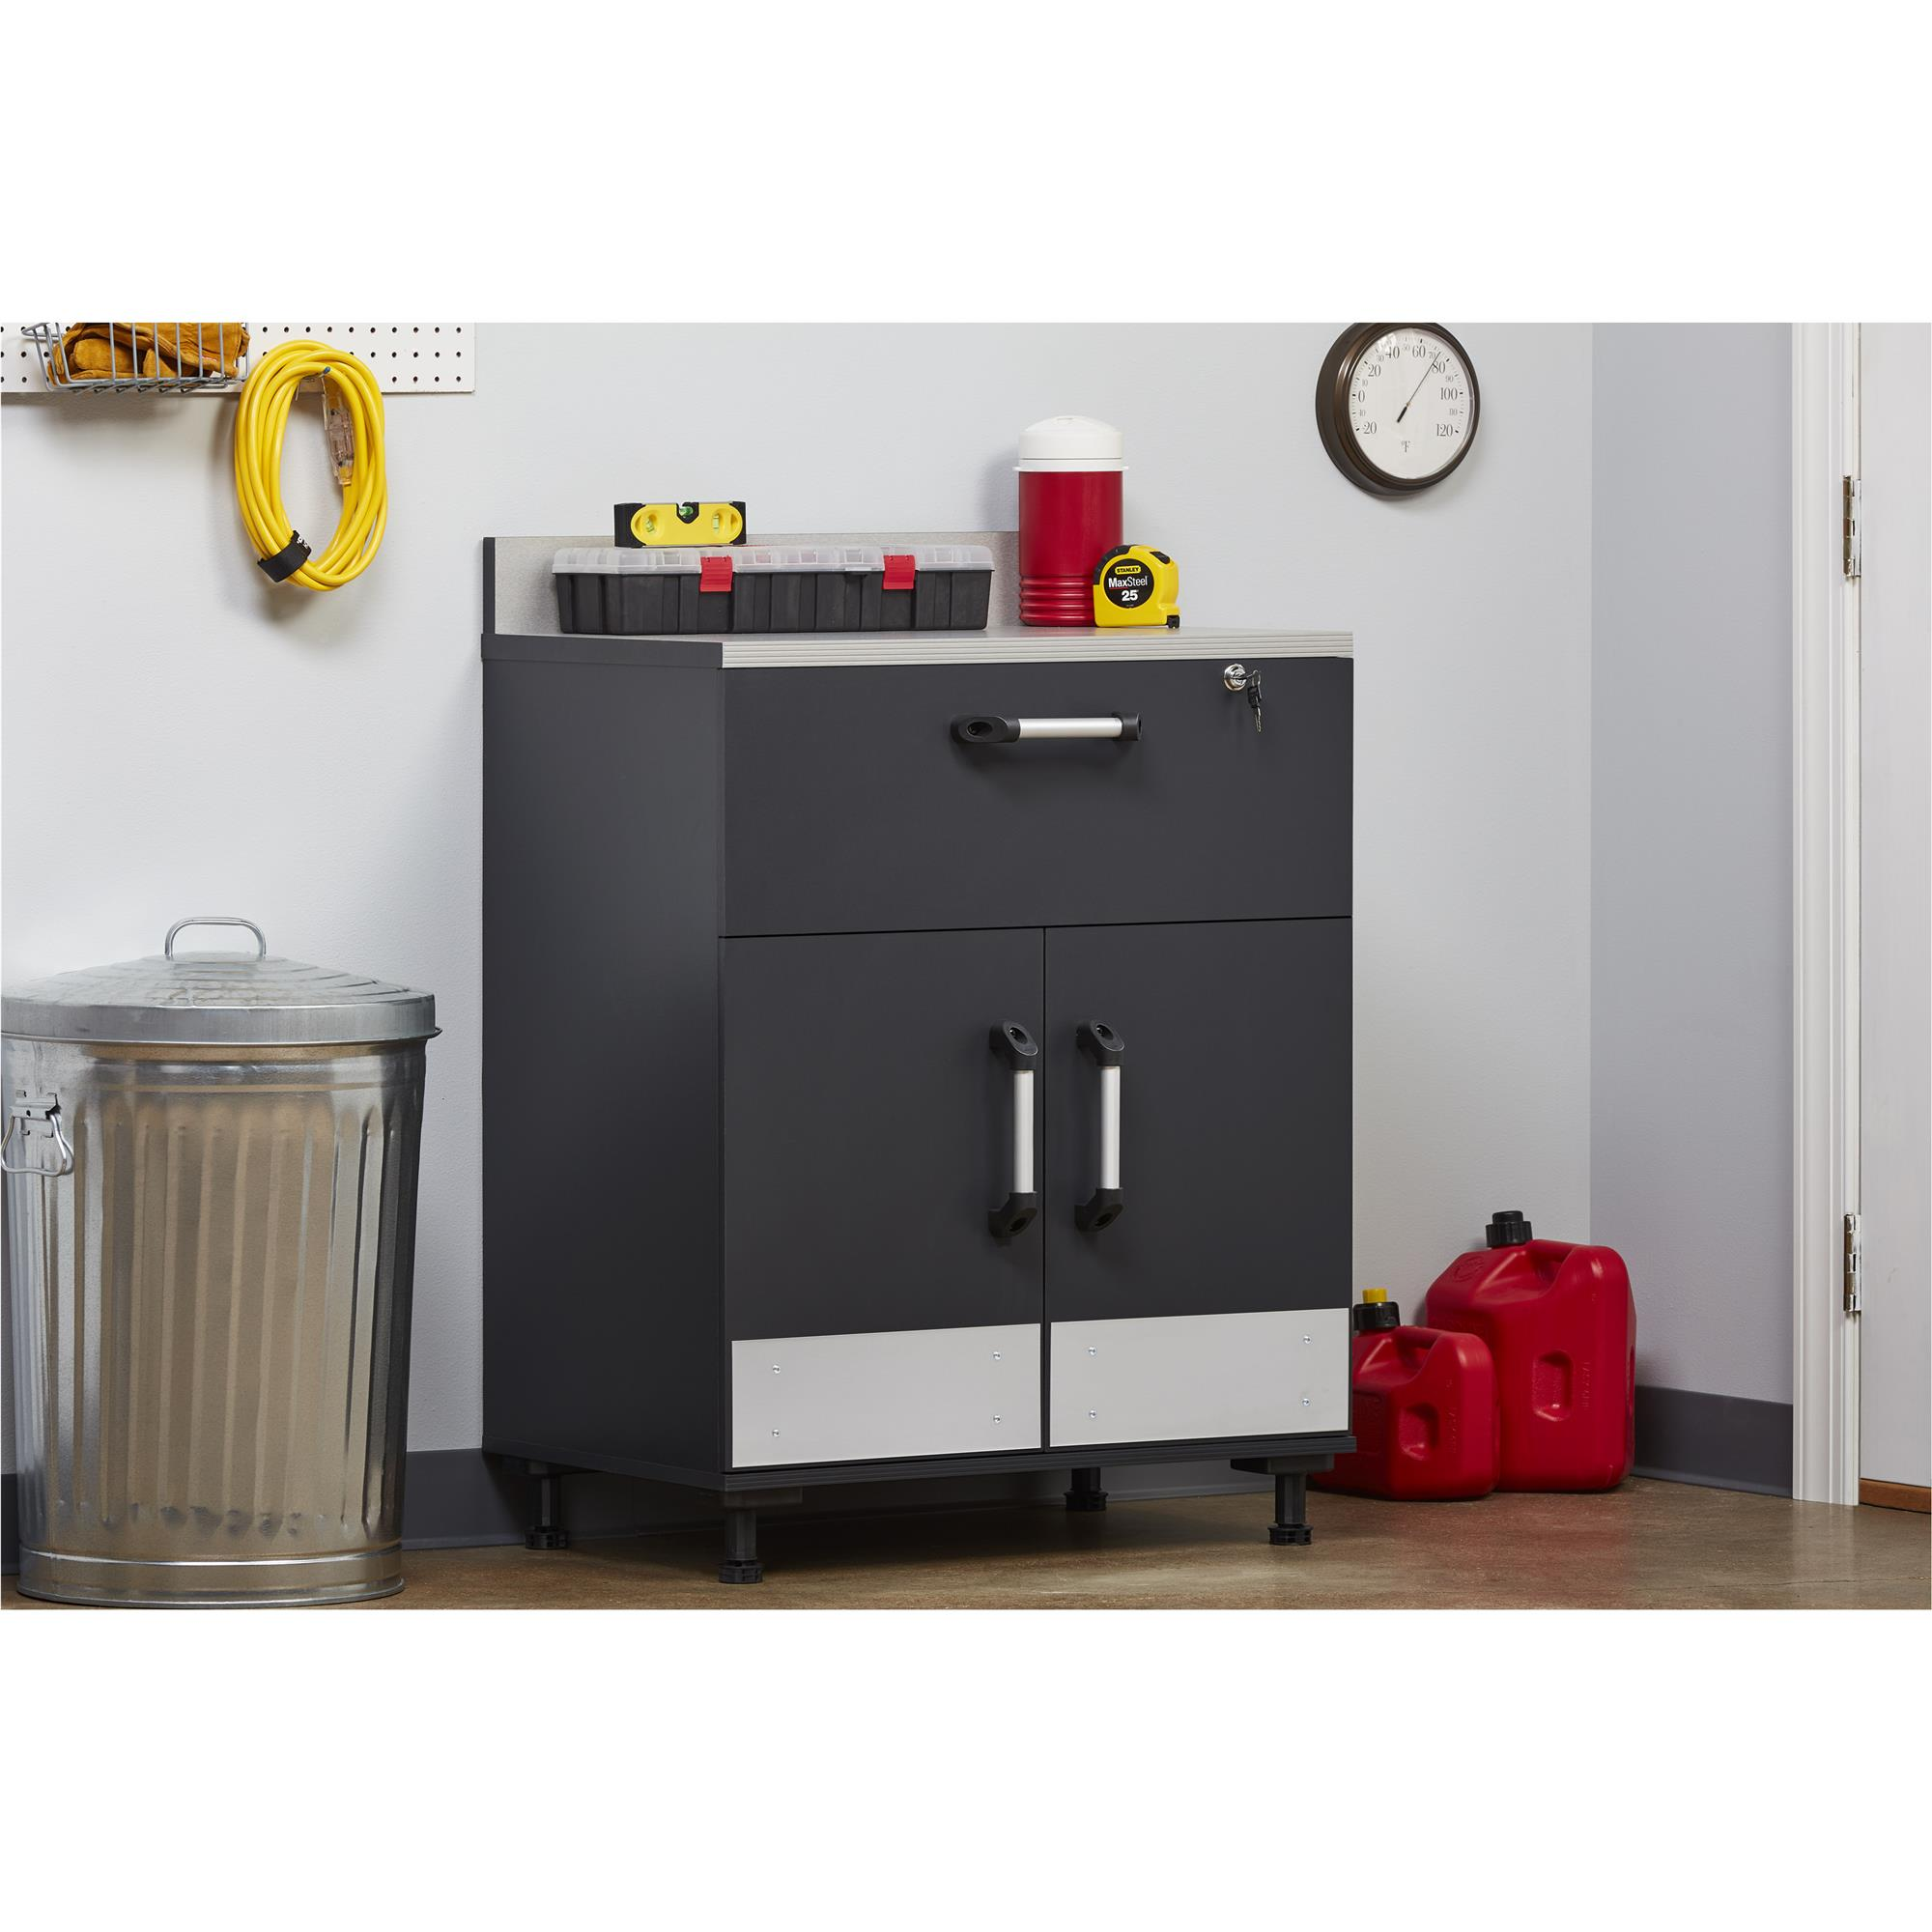 SystemBuild 2 Door and 1 Drawer Base Cabinet, Charcoal Gray